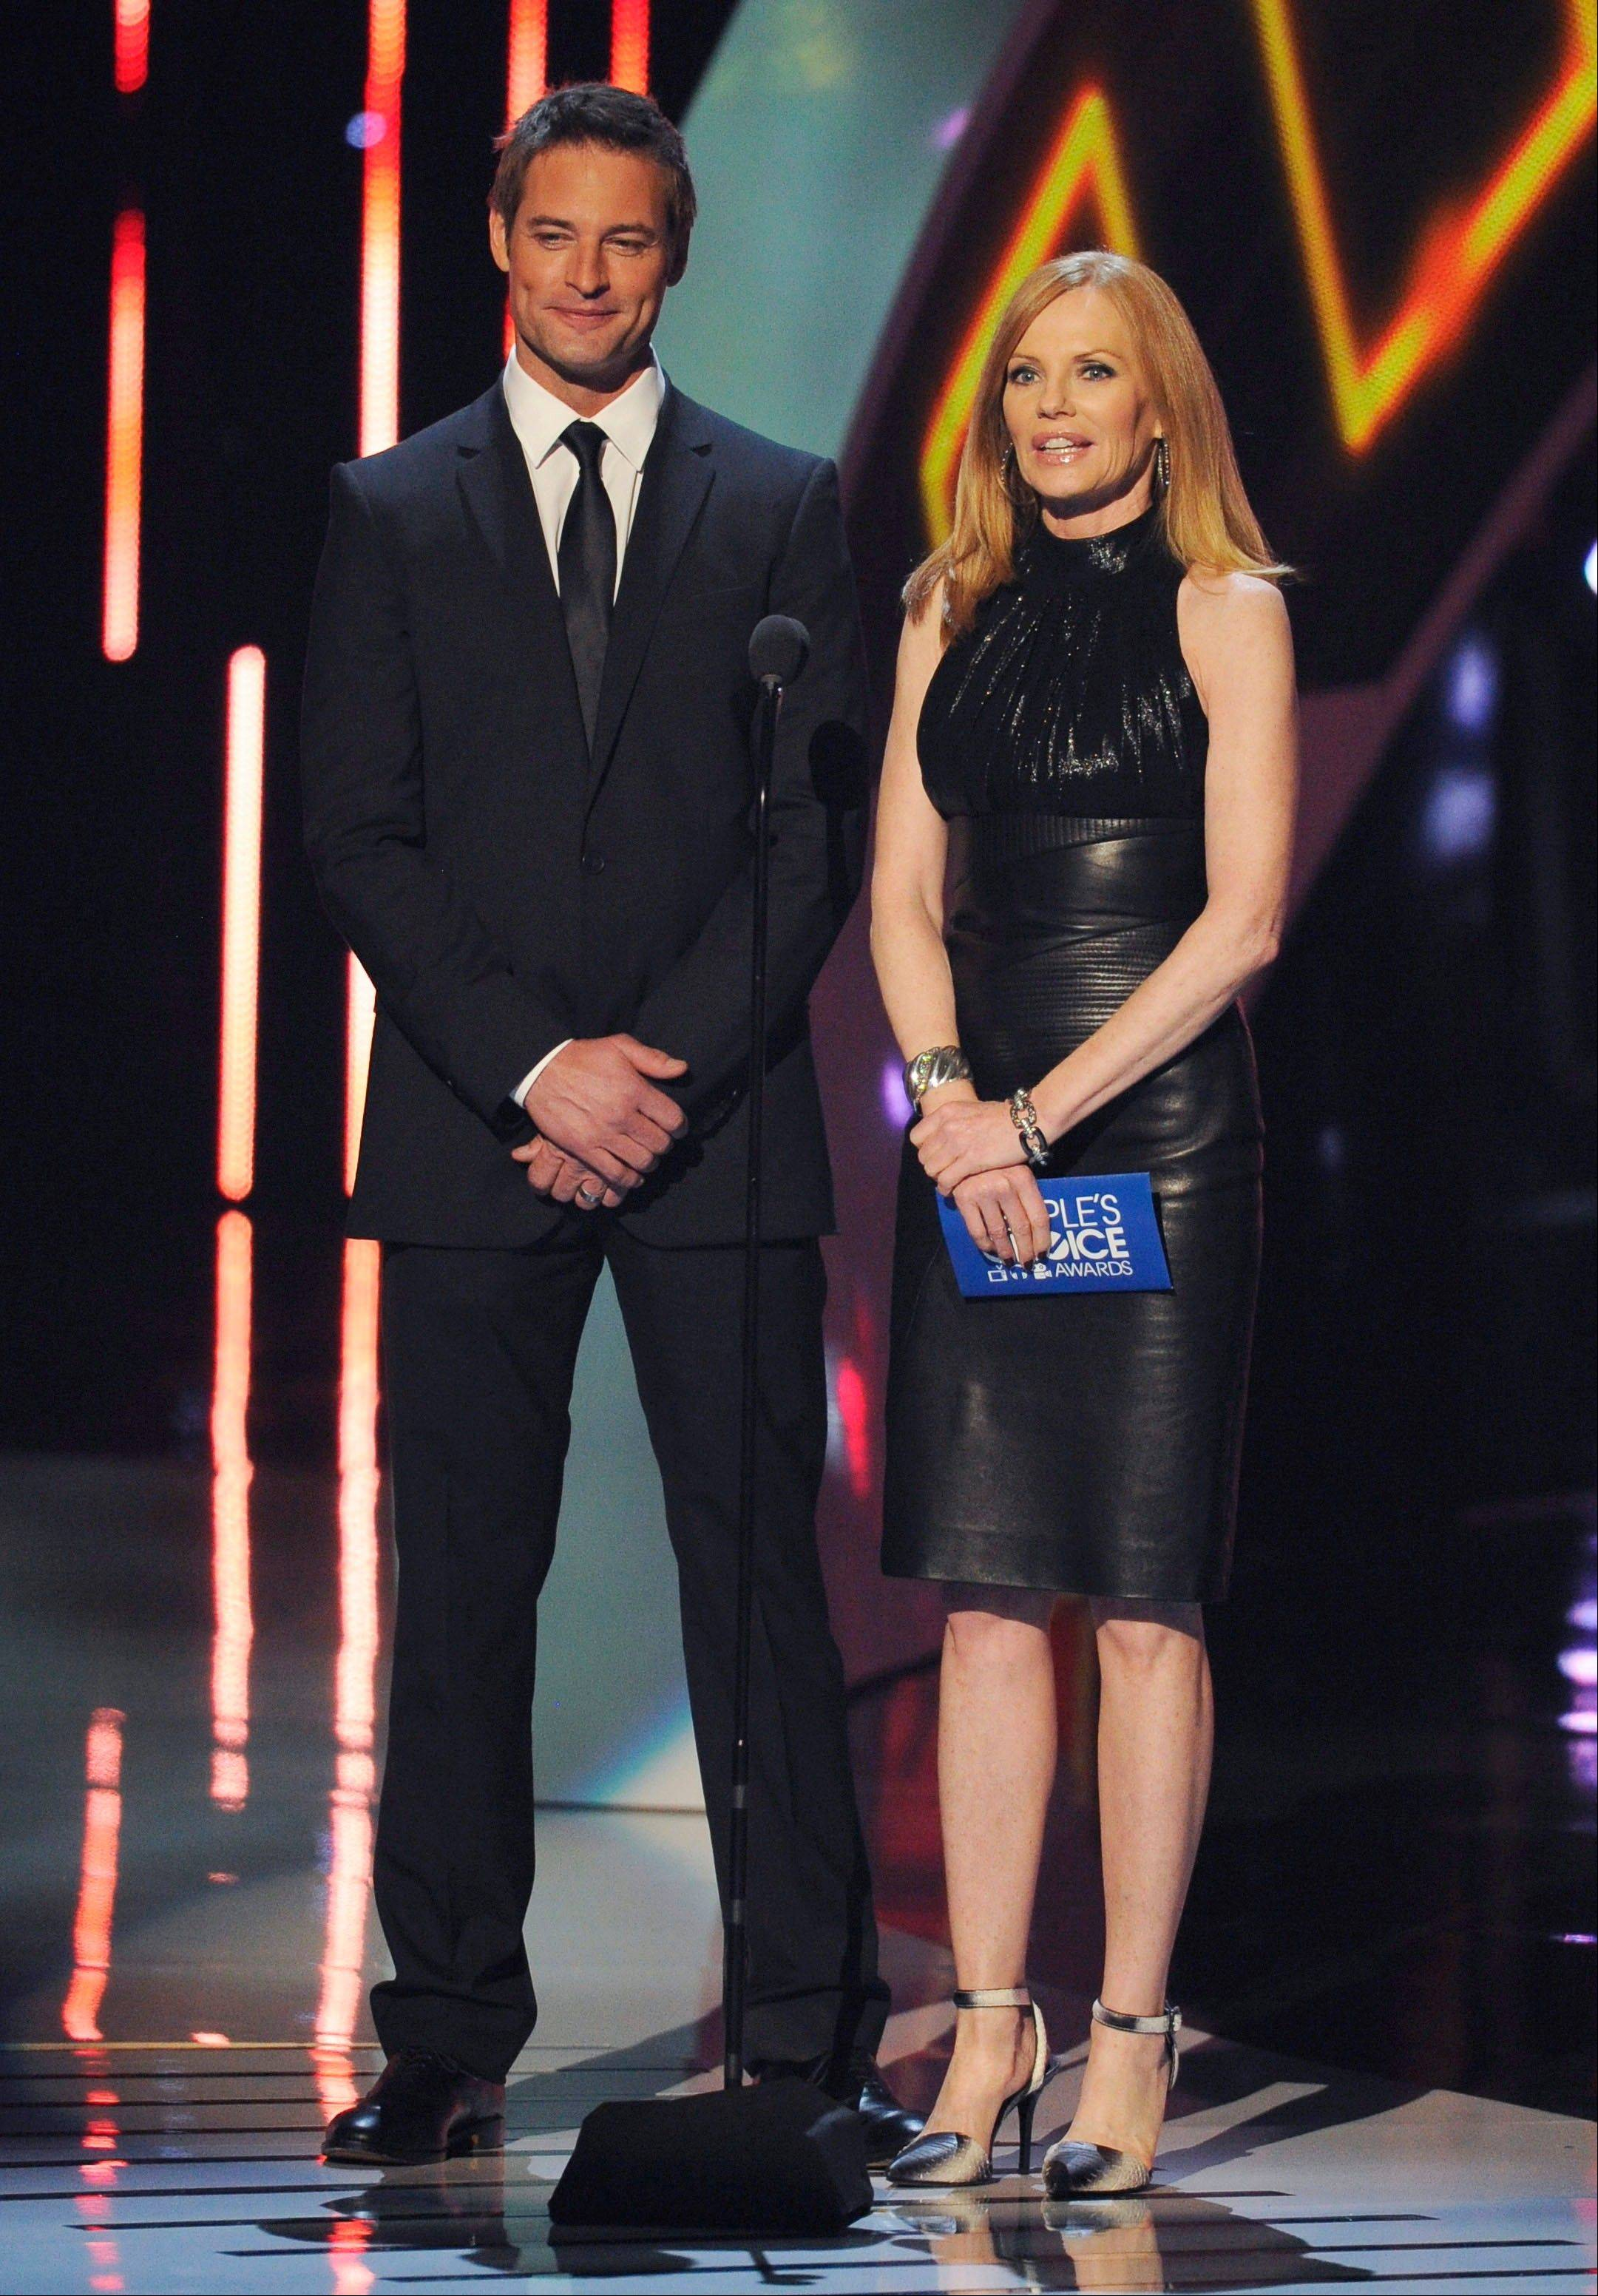 Associated PressJosh Holloway, left, and Marg Helgenberger present the award for favorite network TV drama at the 40th annual People's Choice Awards at the Nokia Theatre L.A. Live on Wednesday, Jan. 8, 2014, in Los Angeles.